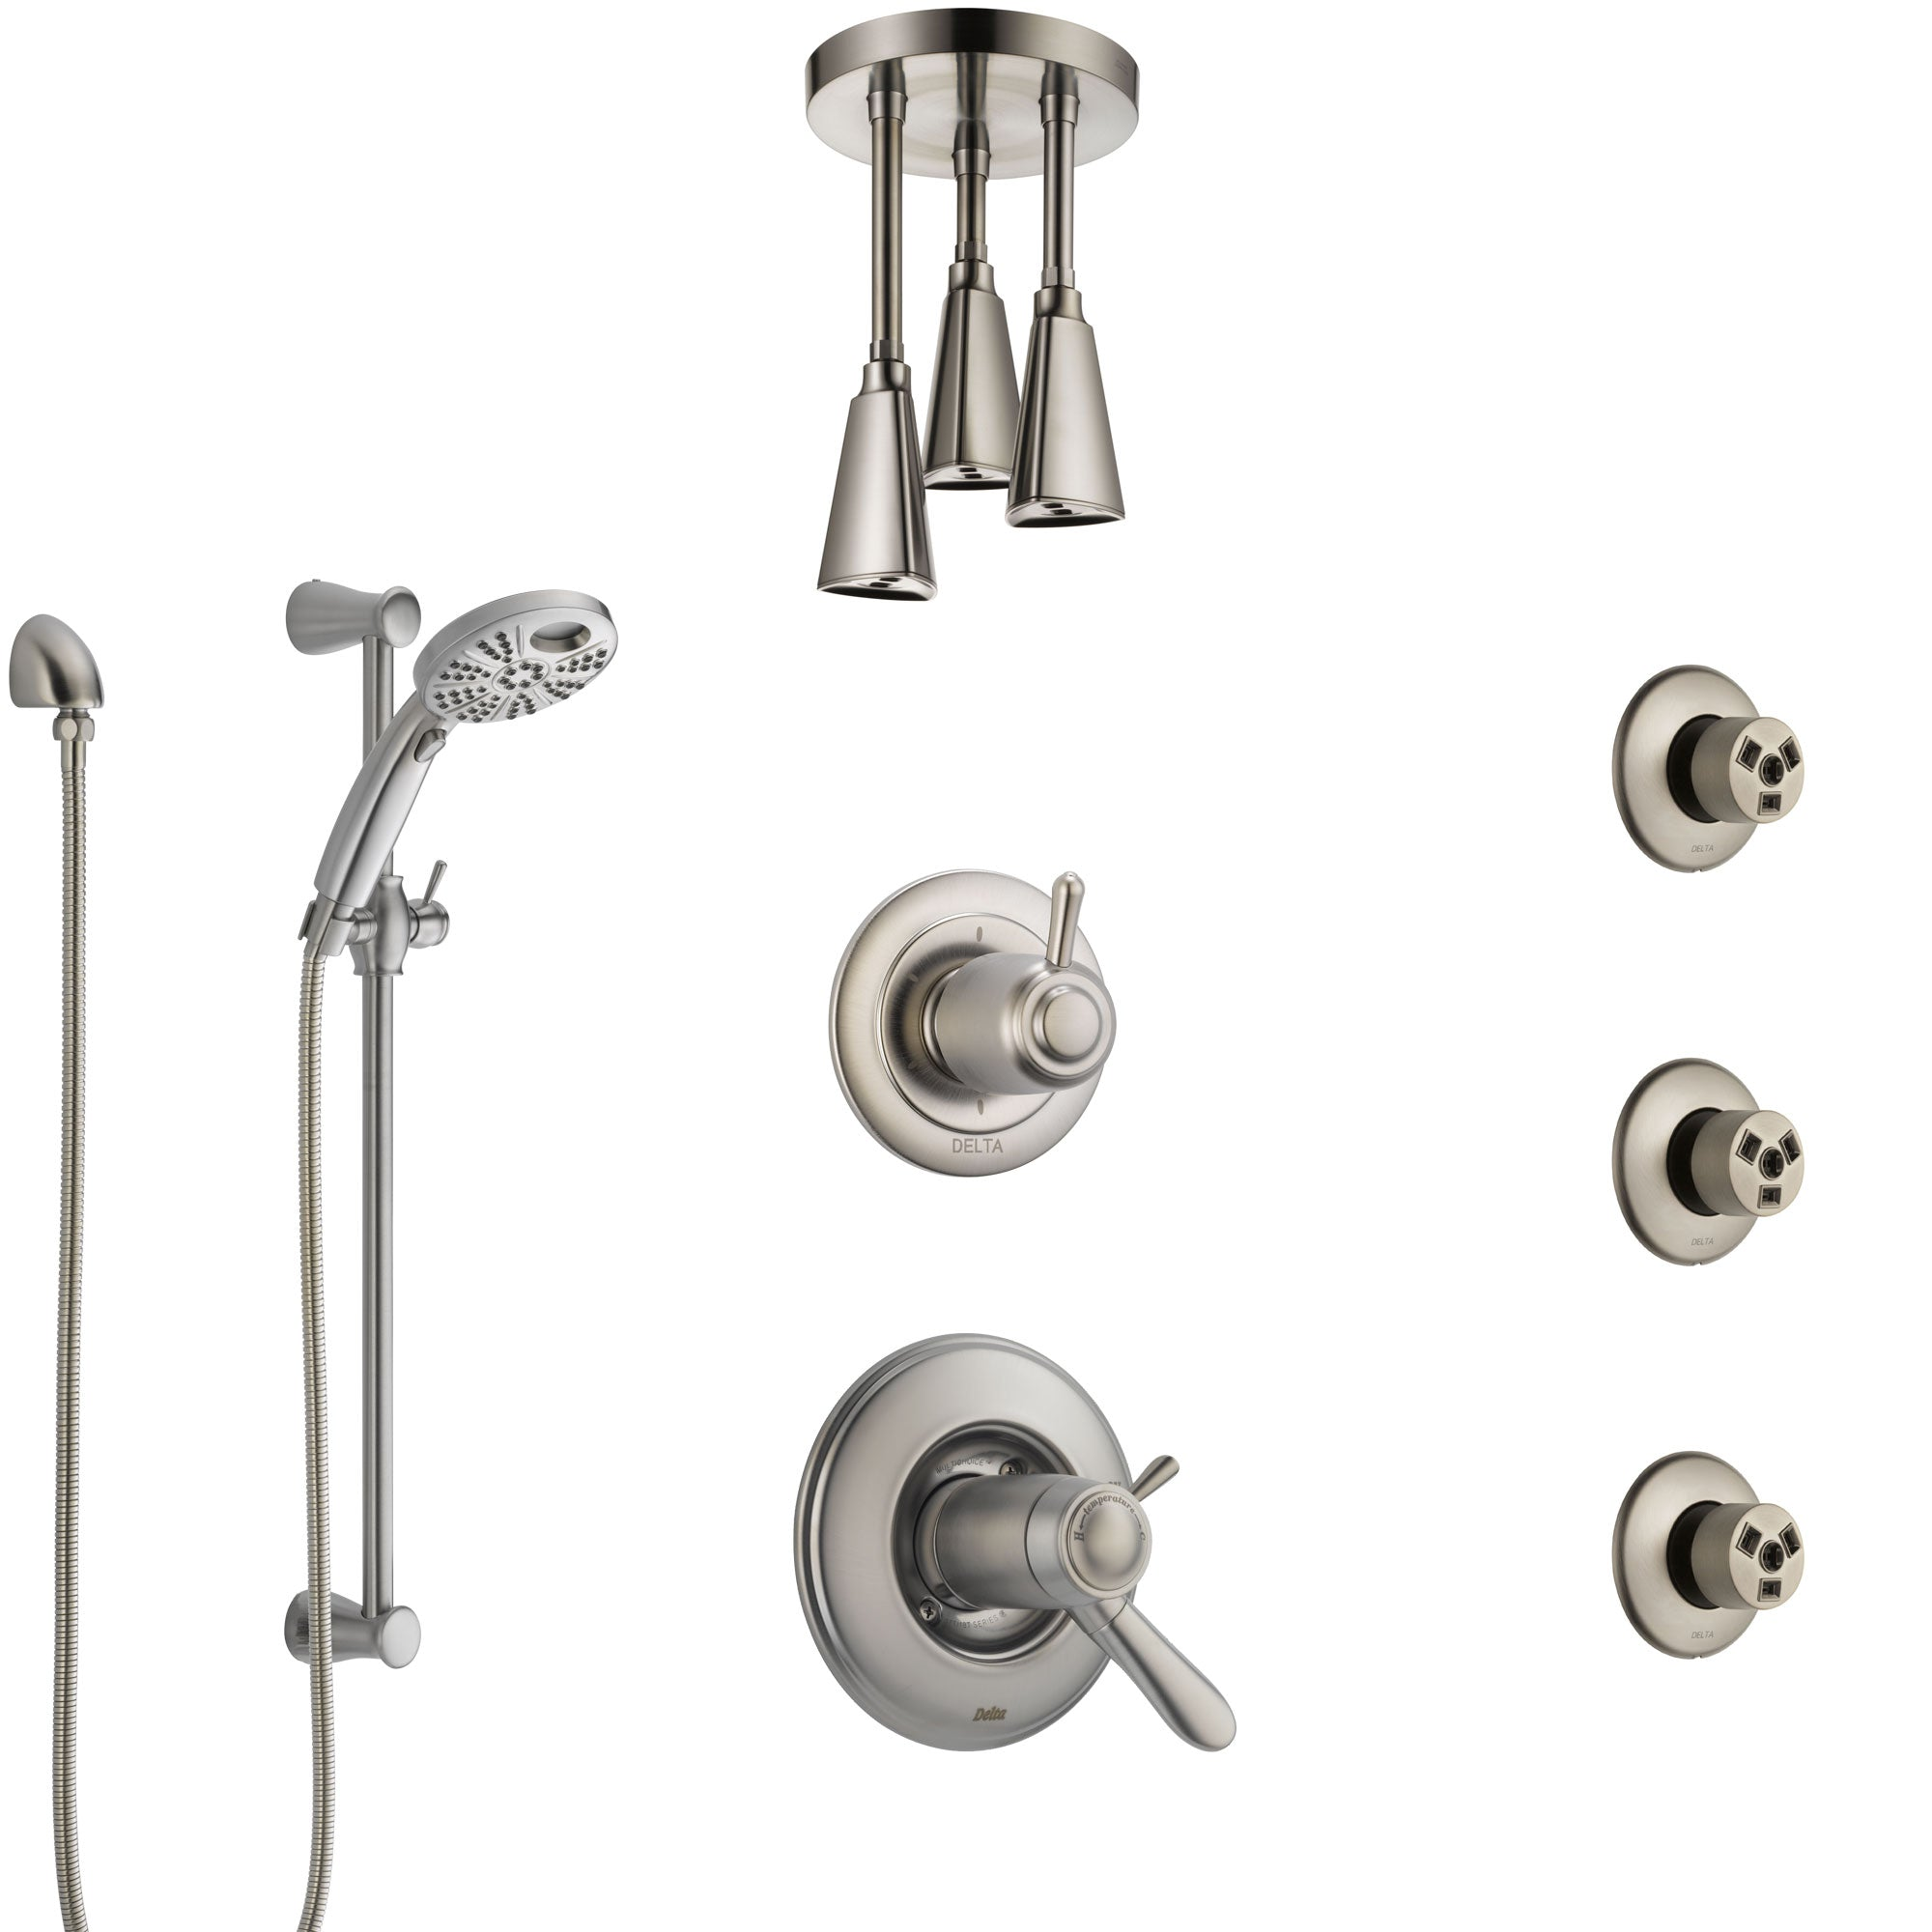 Delta Lahara Thermostatic Control Stainless Steel Finish Shower System, Diverter, Ceiling Showerhead, 3 Body Sprays, & Temp2O Hand Shower SS17T382SS4